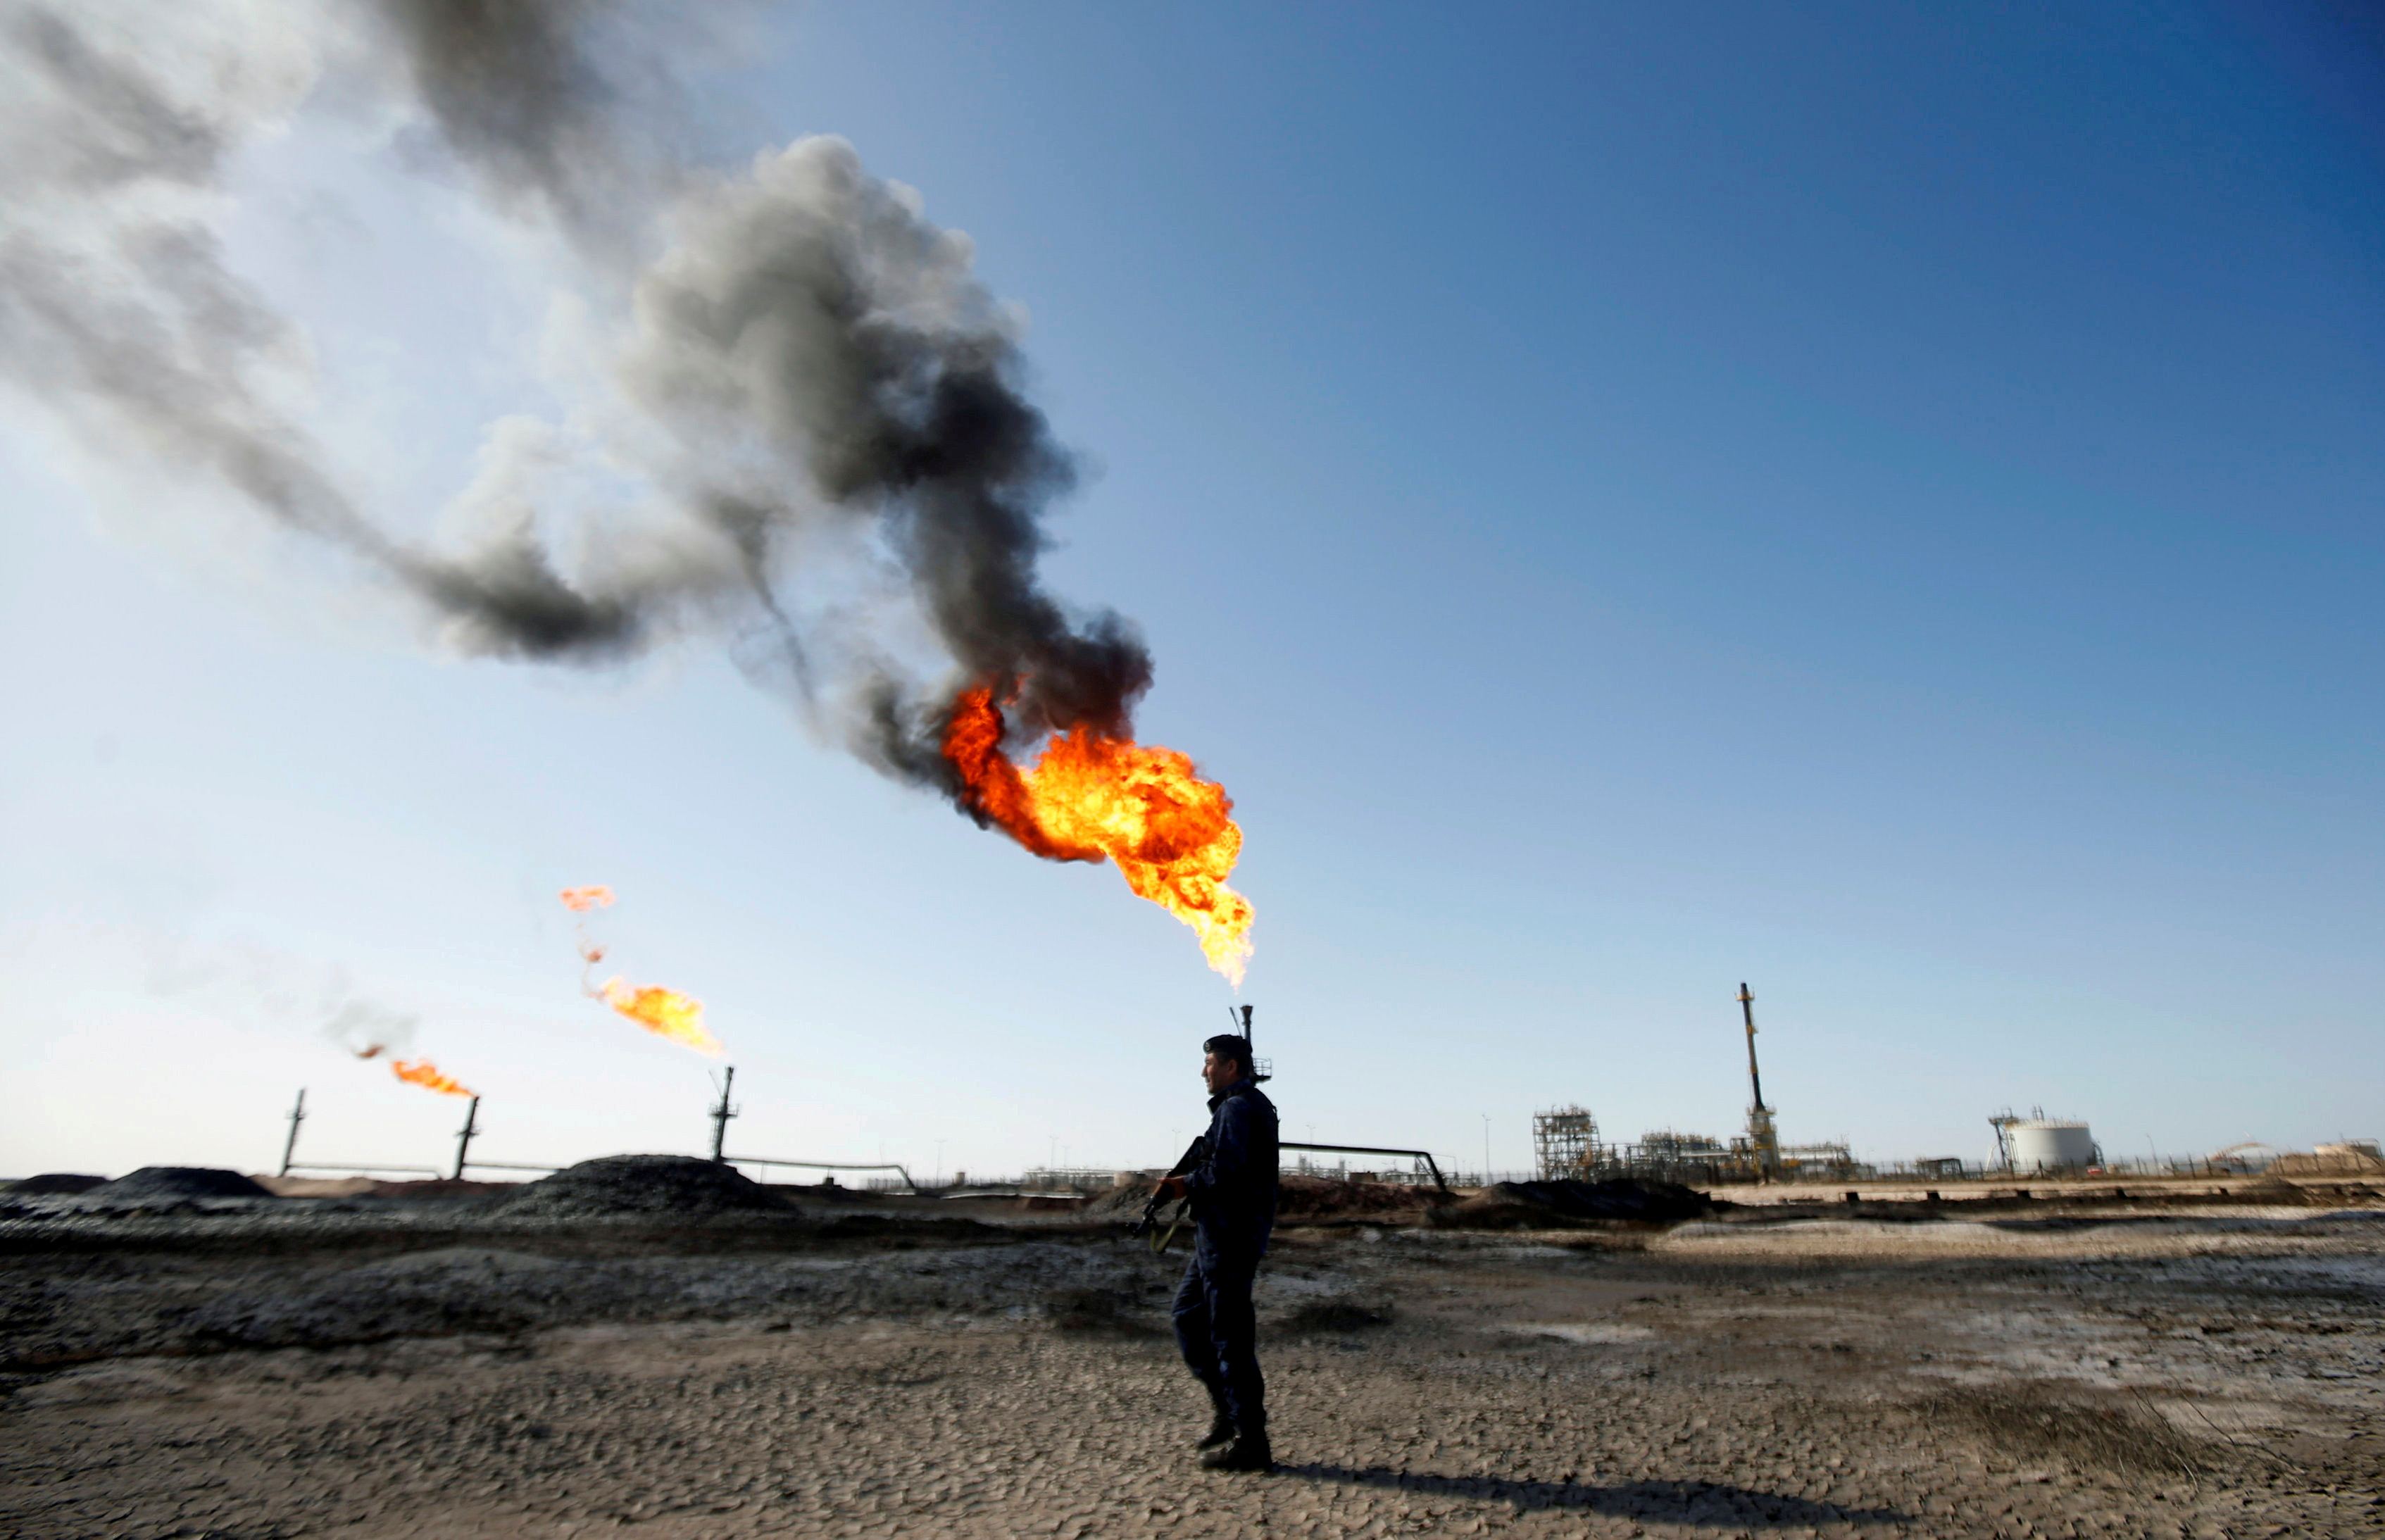 A policeman is seen at West Qurna-1 oil field, which is operated by ExxonMobil, in Basra, Iraq January 9, 2020. REUTERS/Essam al-Sudani/File Photo